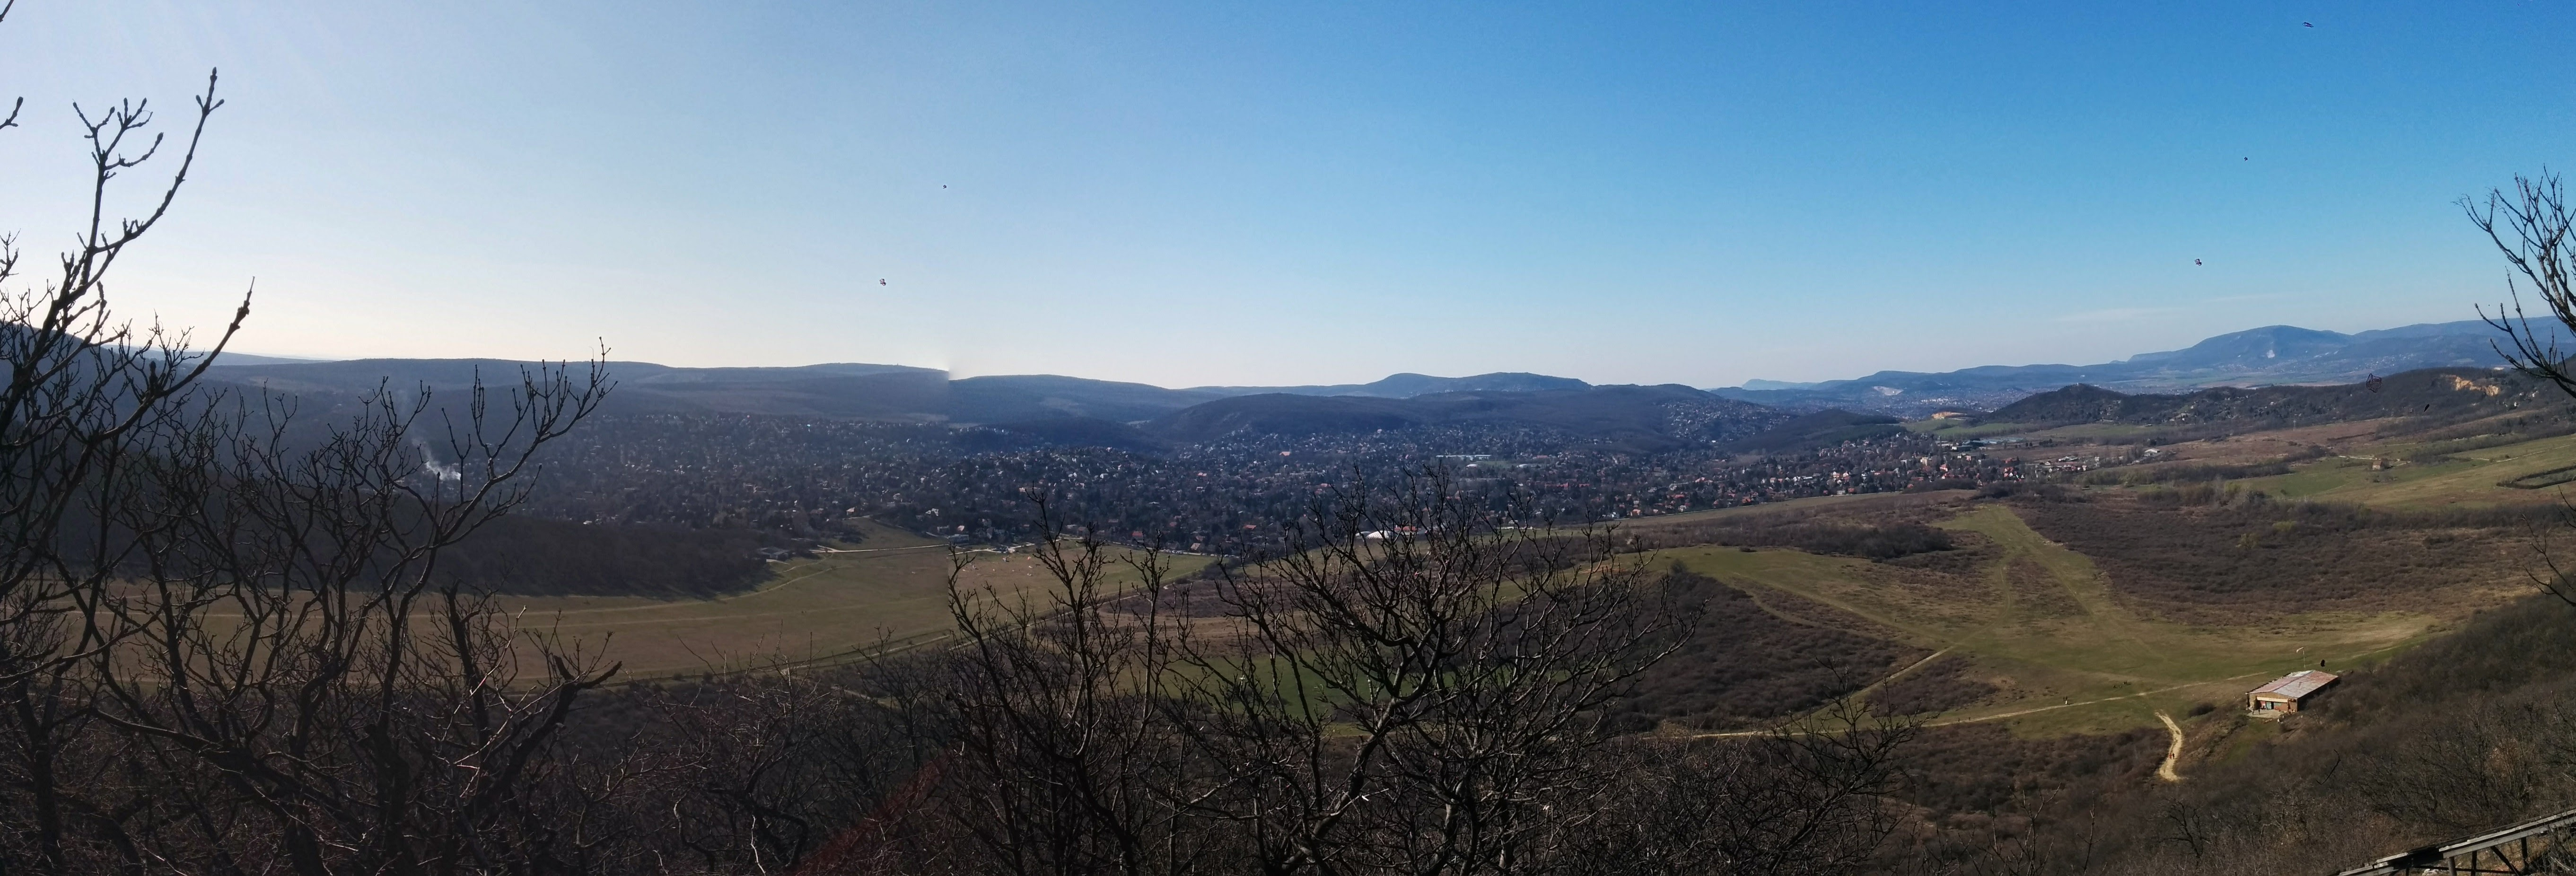 Panorama of Buda from the paraglider start site